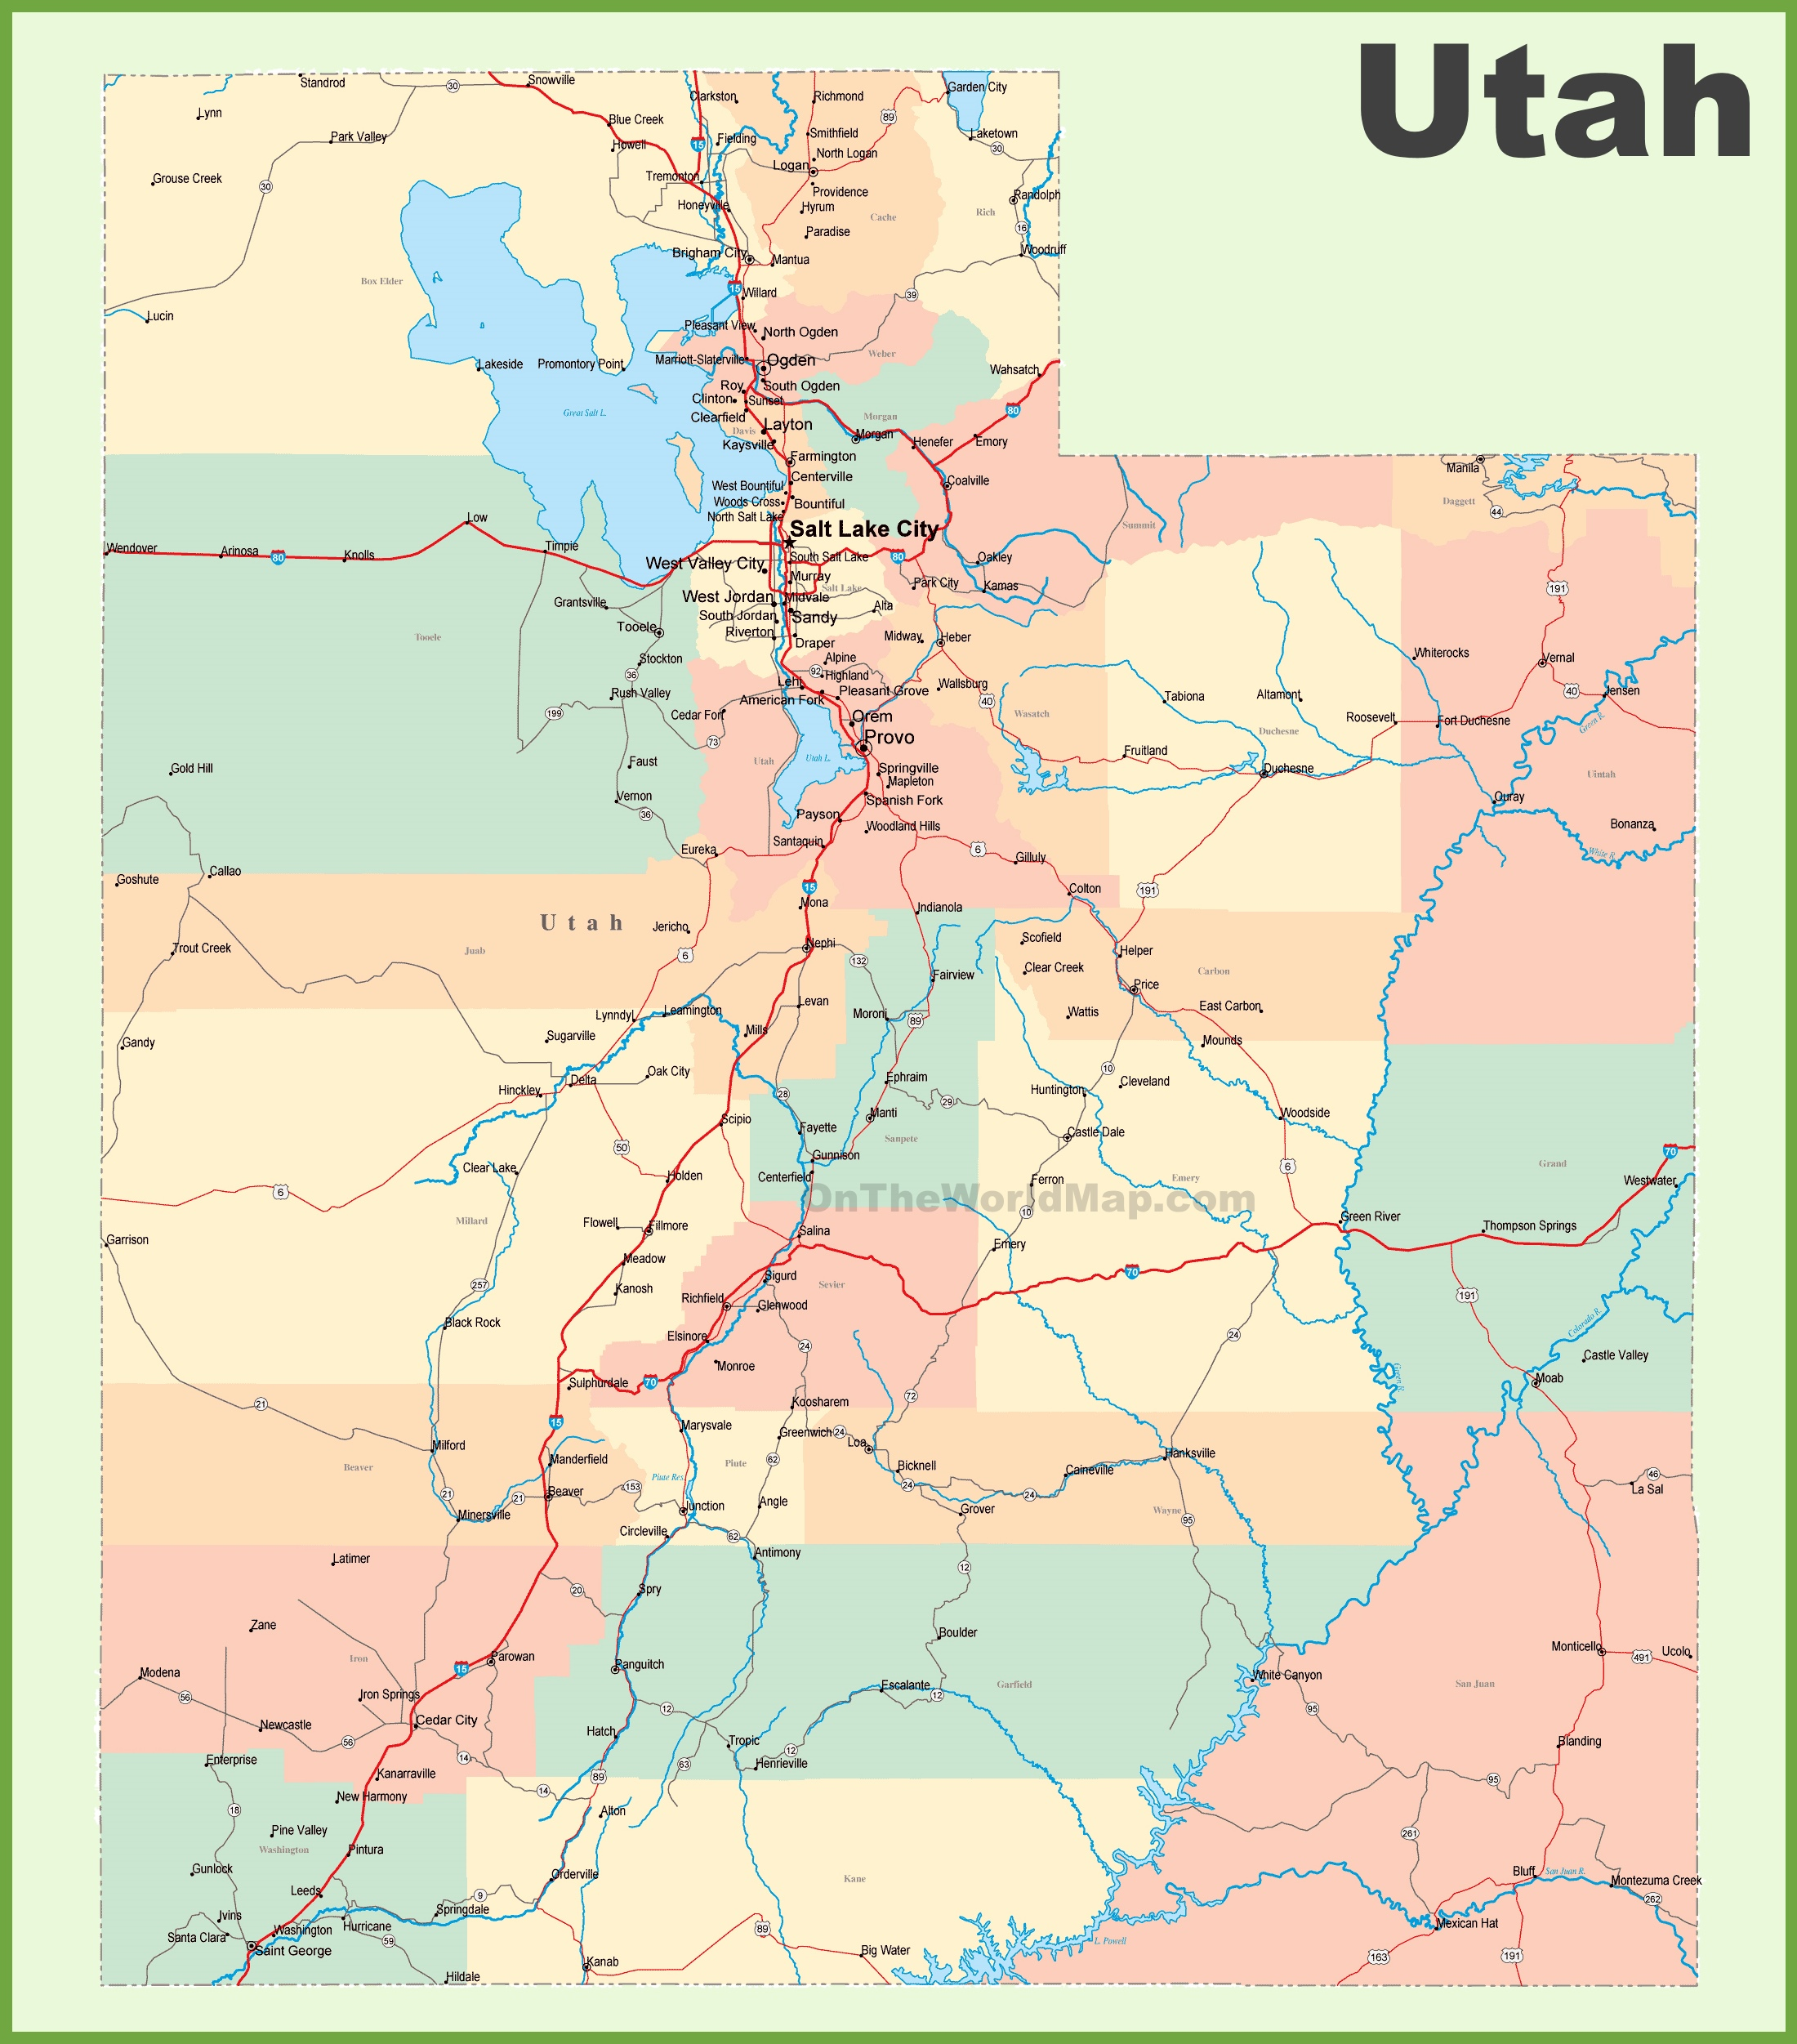 Utah State Maps USA Maps Of Utah UT - Road maps of usa